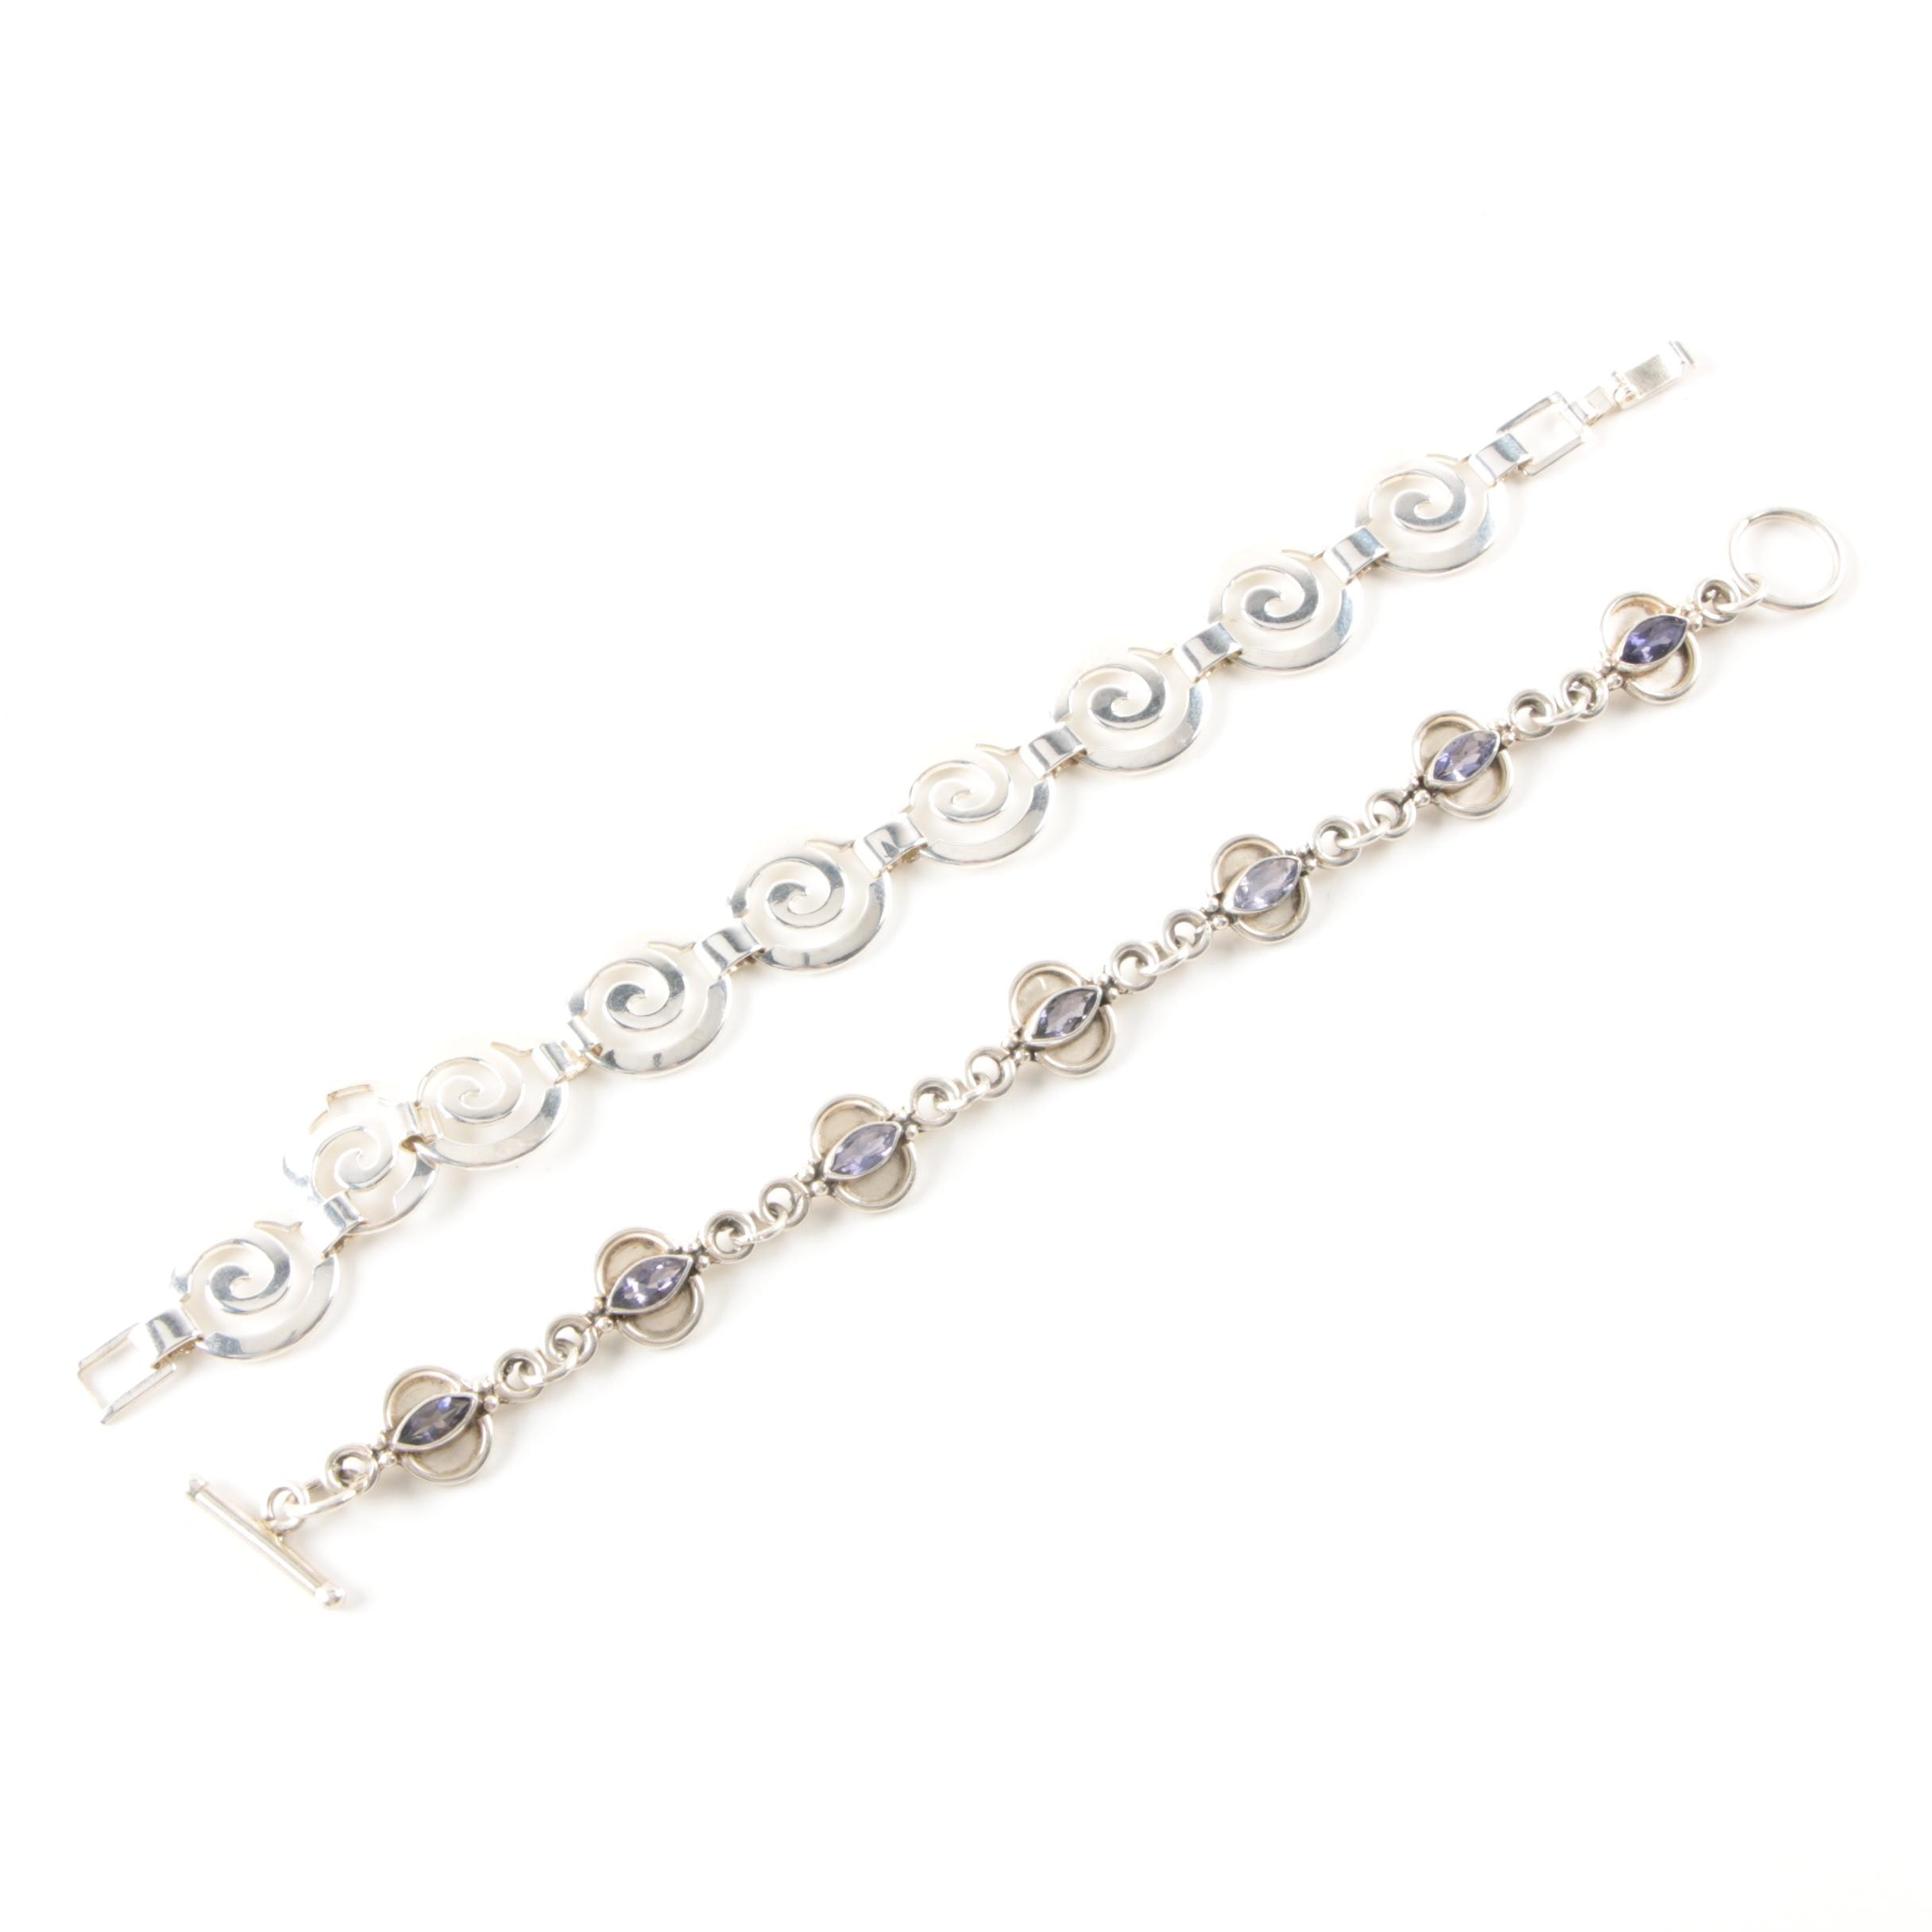 Selection of Sterling Silver Iolite Link Bracelets